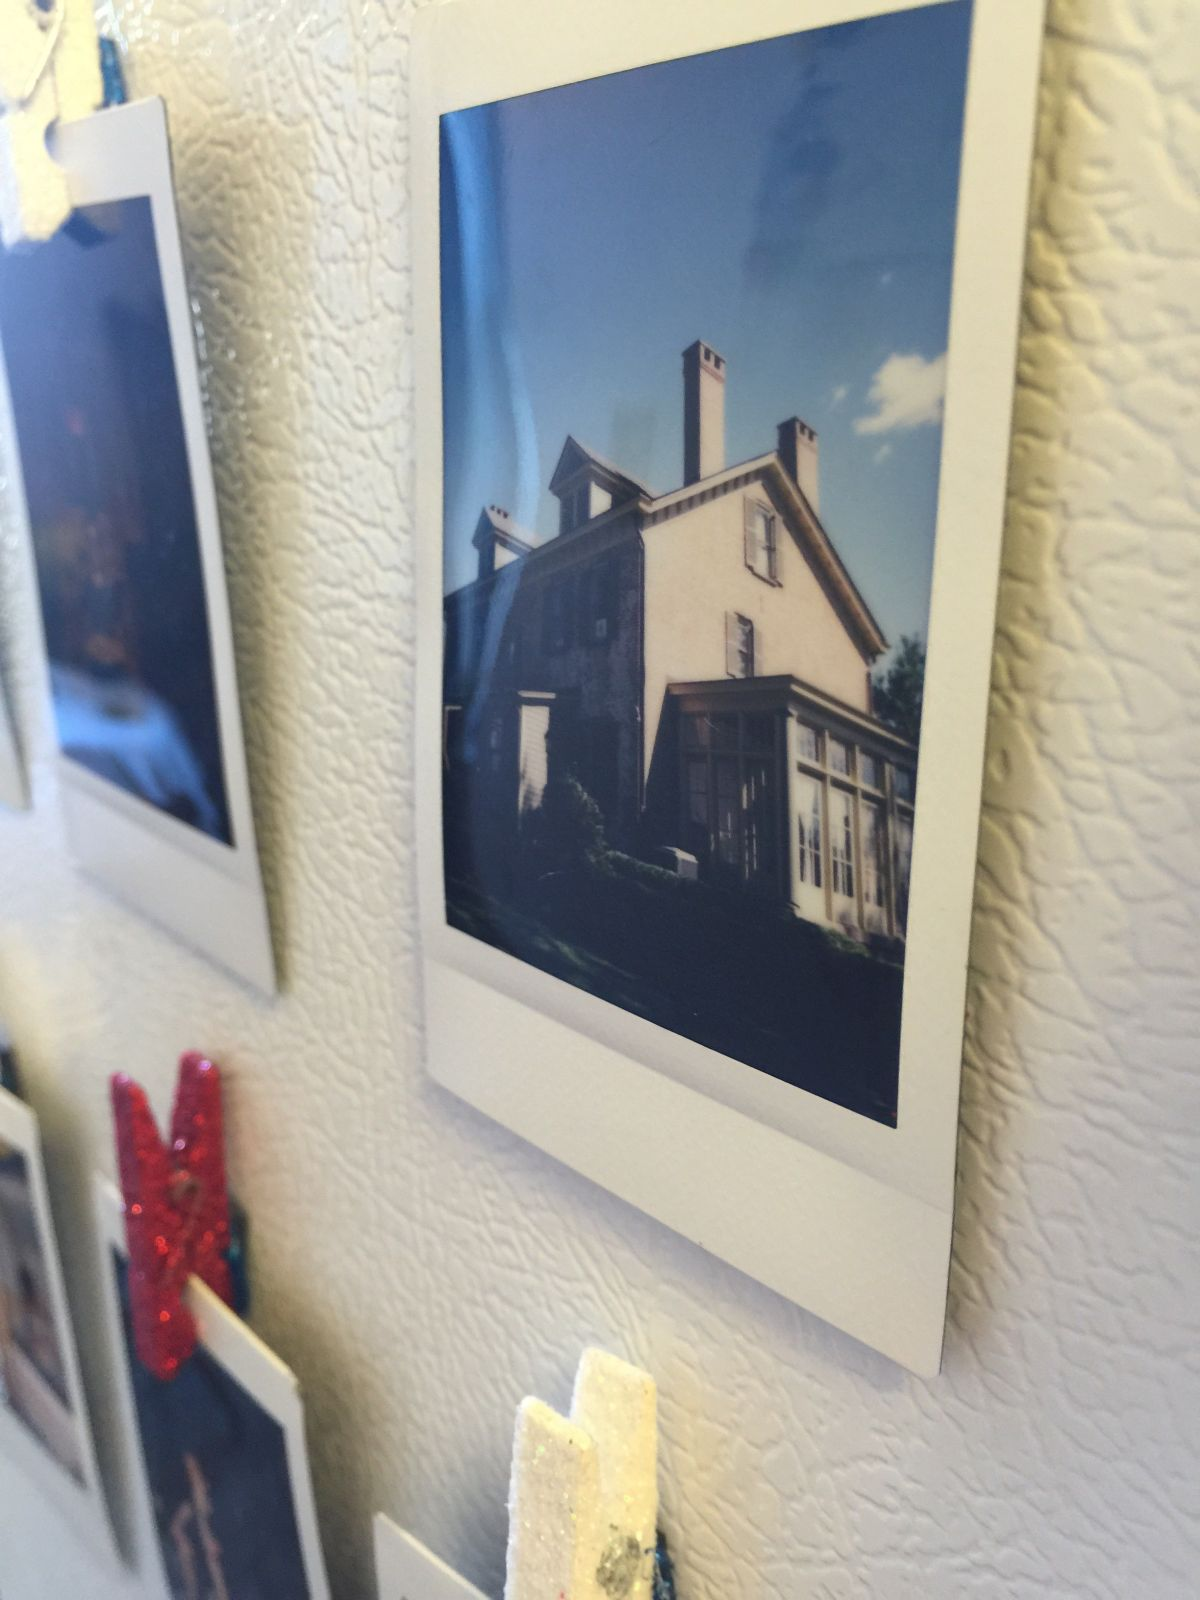 Display polaroid photographs hang